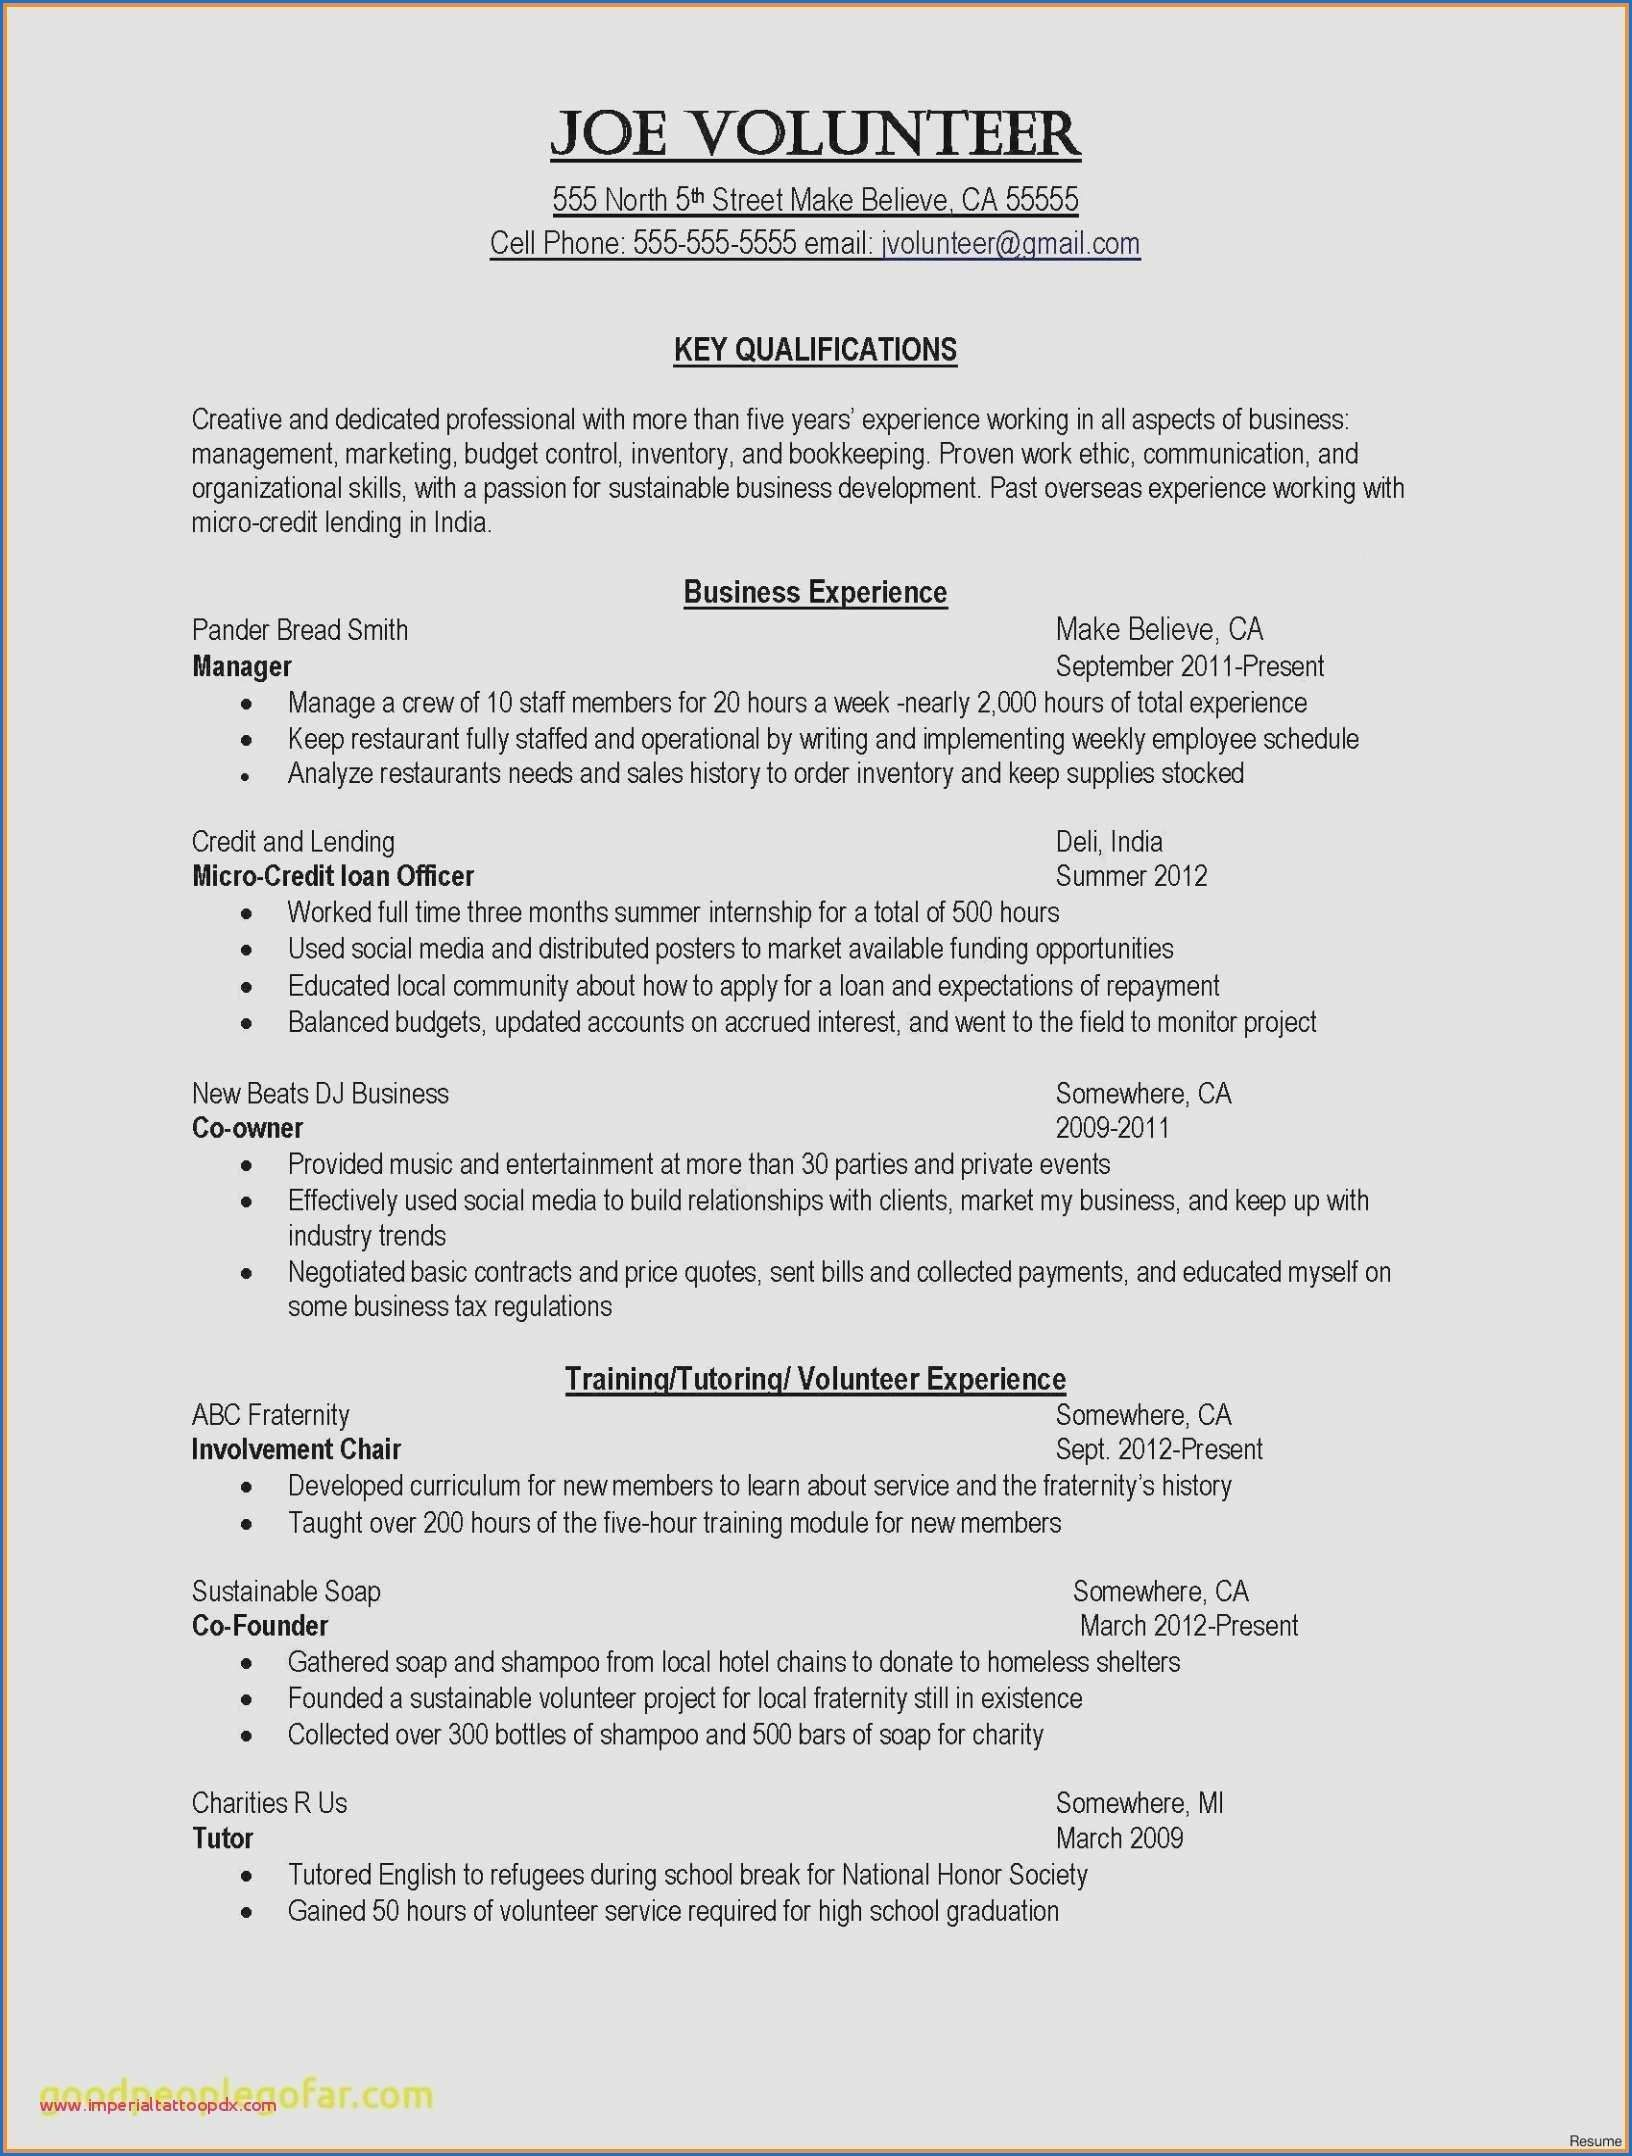 11 Professional Interests Resume Examples Check More At Https Www Ortelle Org Professional Inte Marketing Plan Template Event Planning Quotes Resume Examples